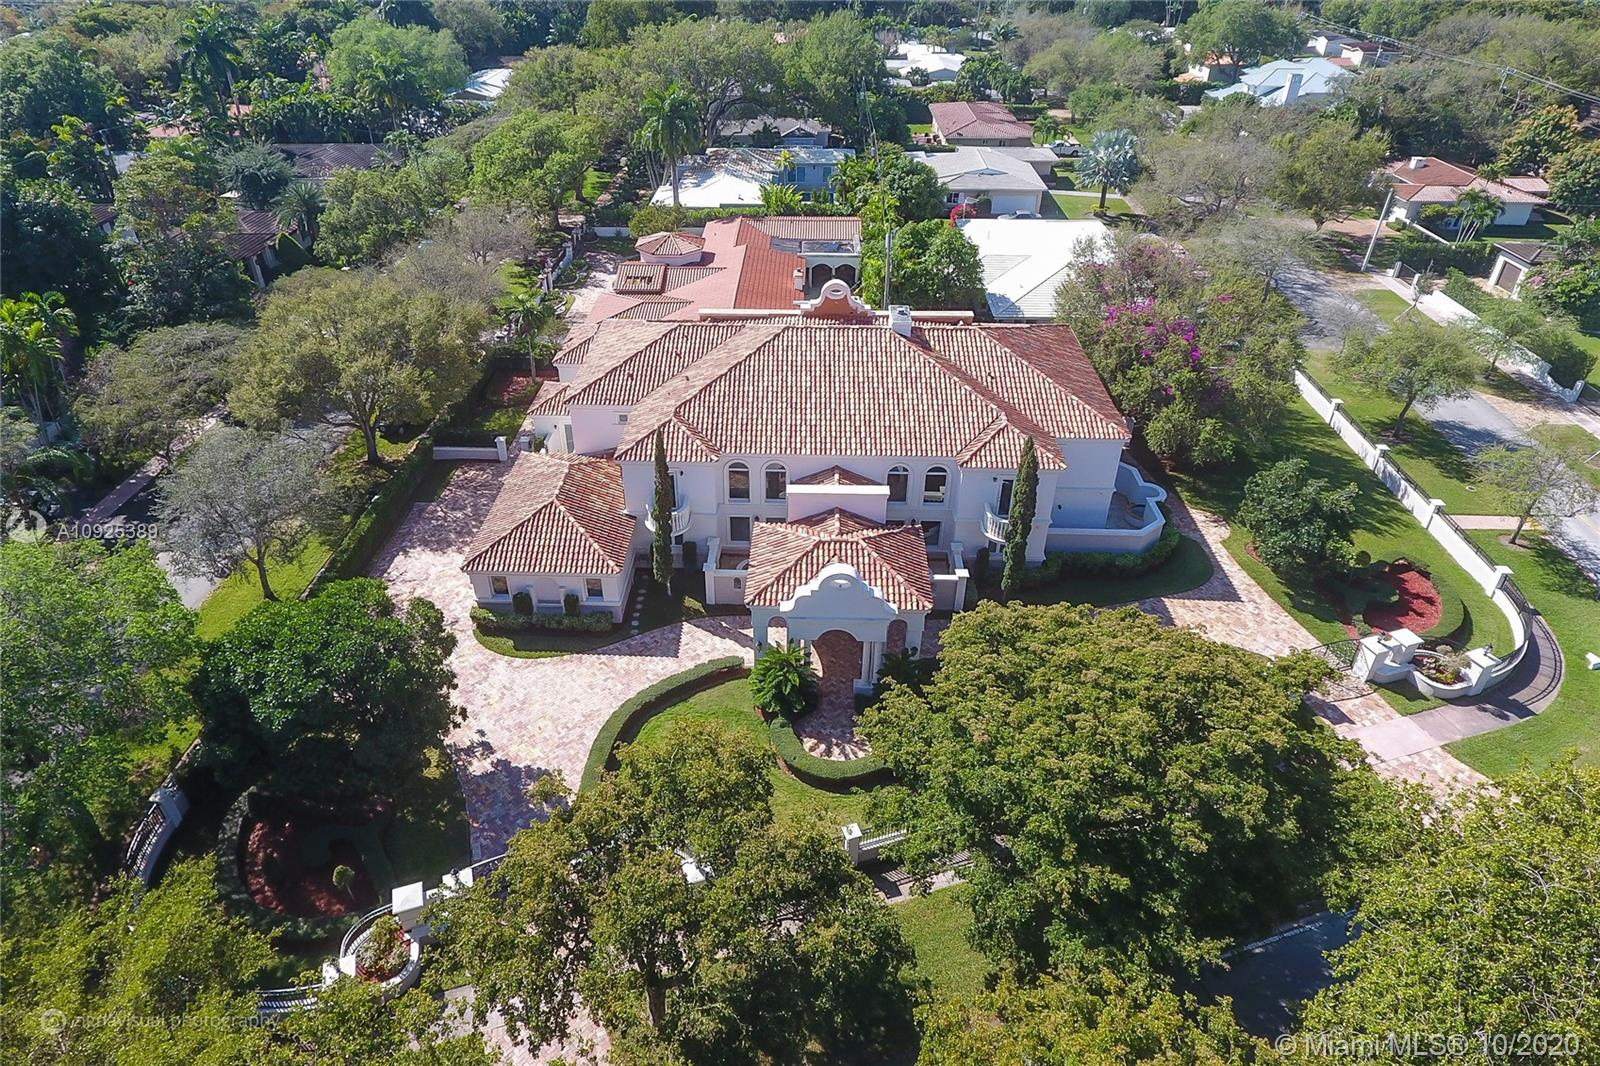 Absolutely stunning Estate in Coral Gables. Completely remodeled in 2017 with no expenses spared. Almost 8,000 adj sq ft with 6 suites, 1 office and #3 car garage. The best finishes possible: Eggersman Kitchen, Miele Appliances, marble & wood floors, Savant automation system, Ornare closets and more. Remarkable corner house, surrounded by 3 streets on 29,800 SF. Large Terrace surrounding beautiful pool area, with Jacuzzi, summer kitchen with BBQ and cabana bathroom. Manicured gardens complete this astonishing home.